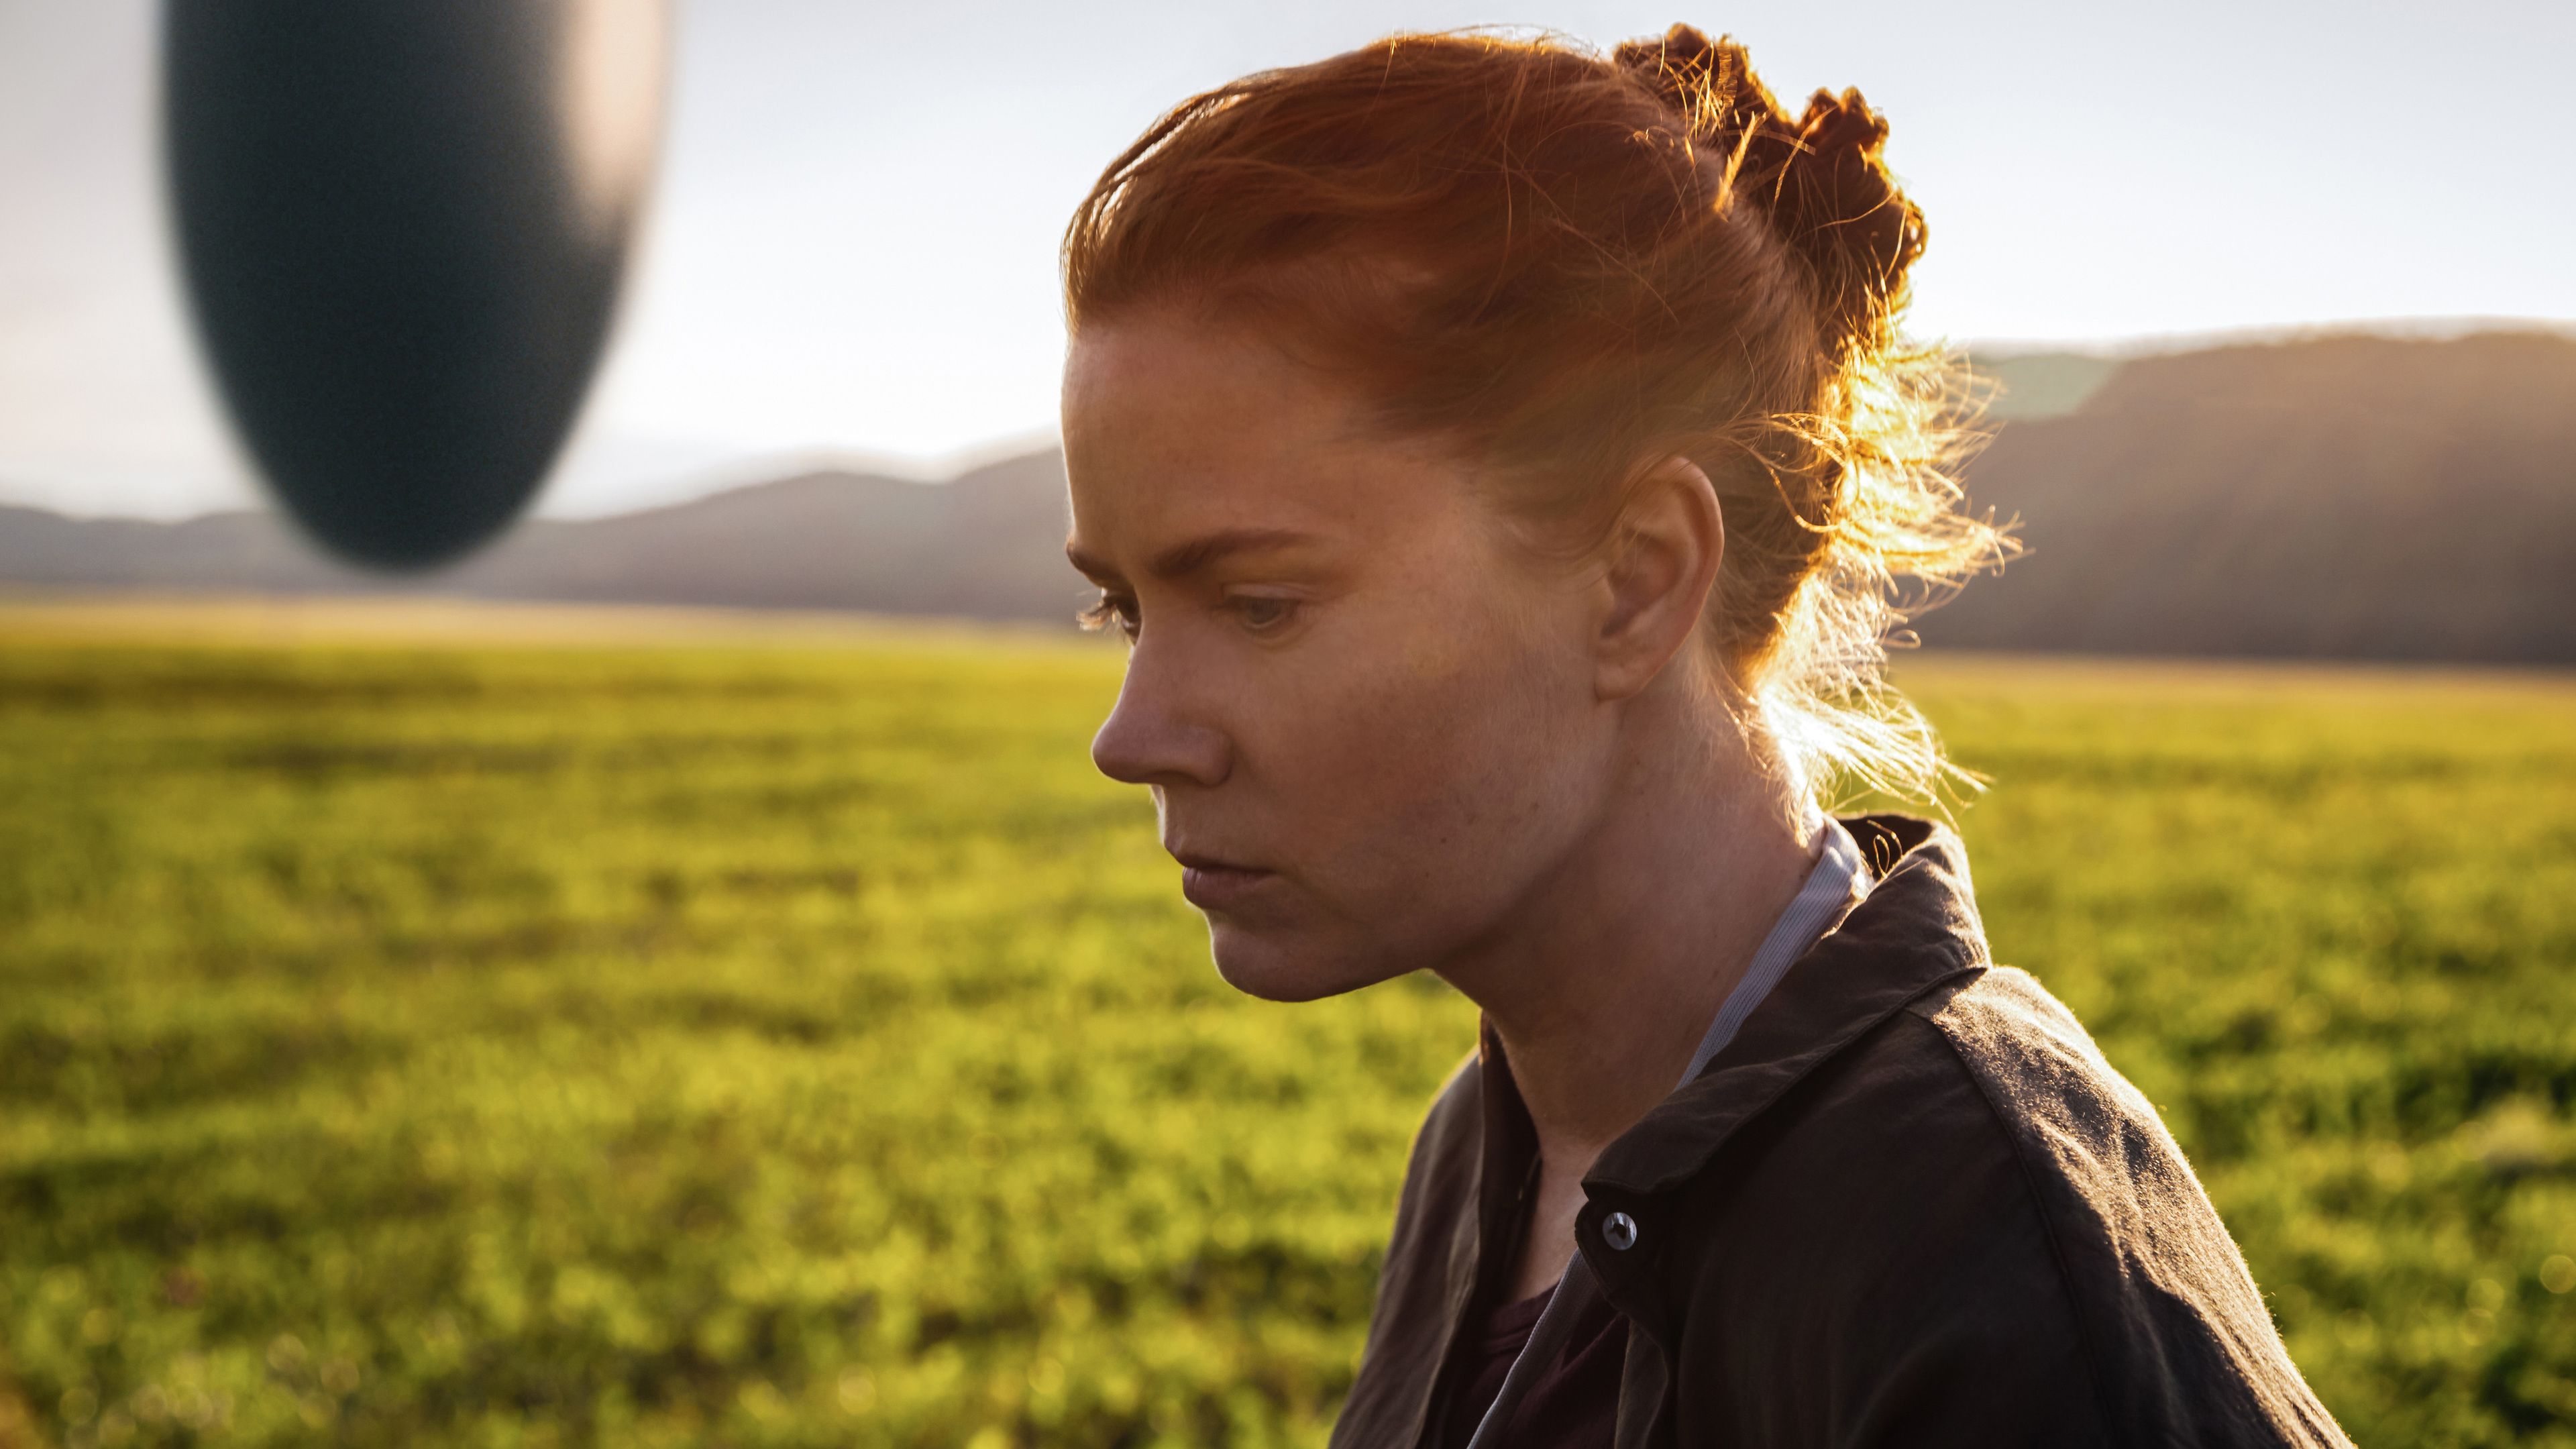 amy adams in arrival movie 1536399793 - Amy Adams In Arrival Movie - arrival wallpapers, amy adams wallpapers, 2016 movies wallpapers